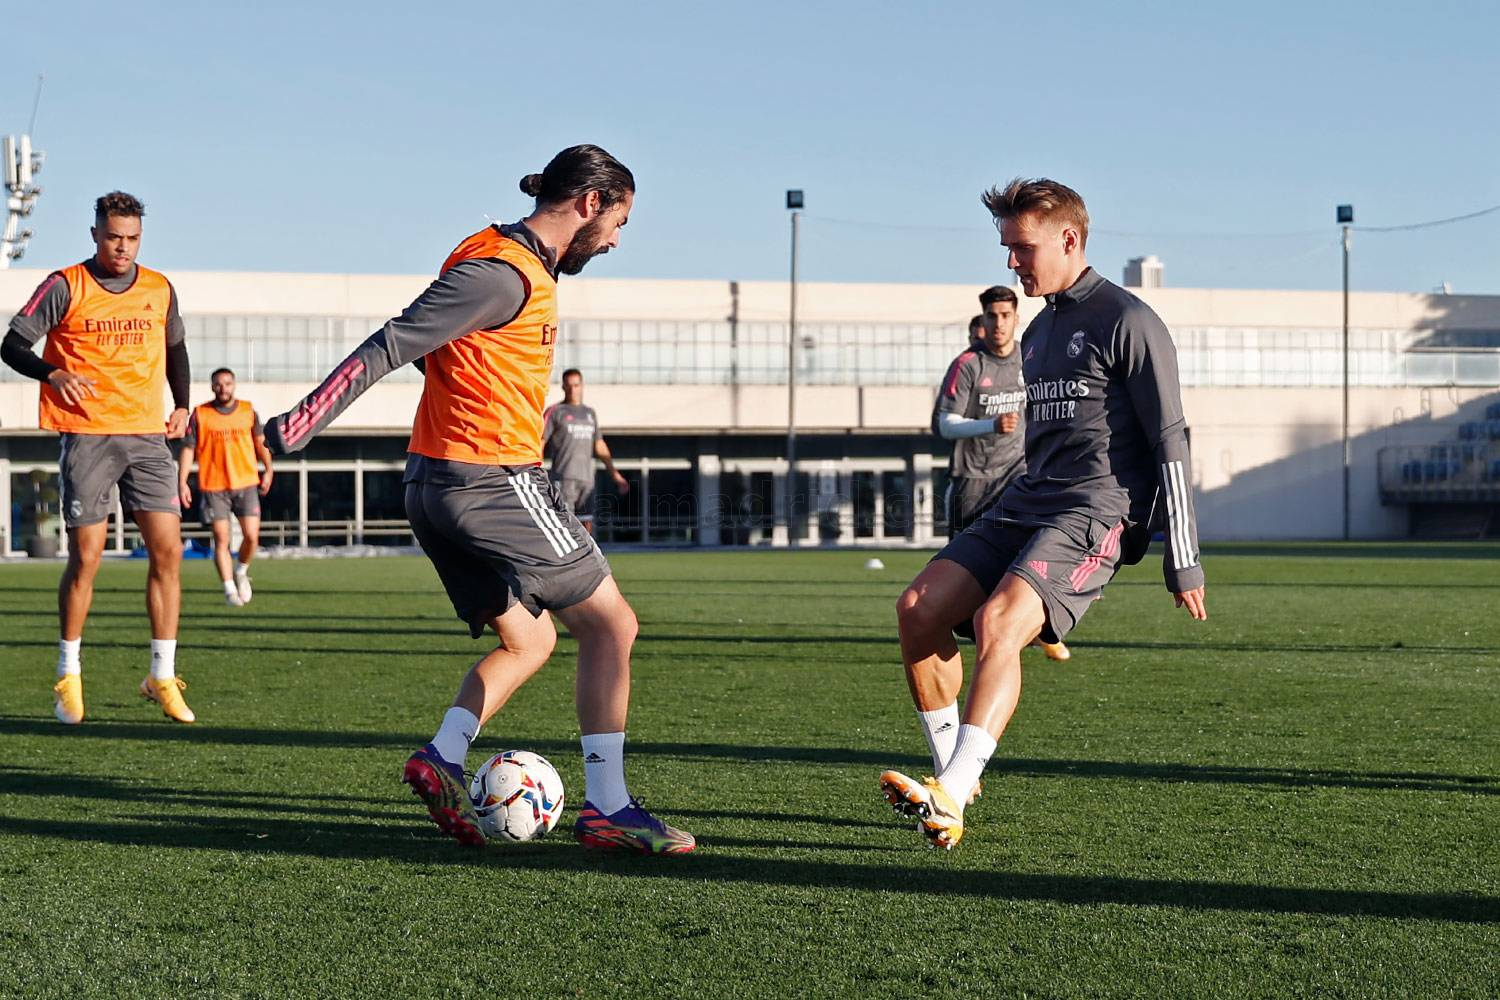 Real Madrid - Entrenamiento del Real Madrid  - 20-11-2020